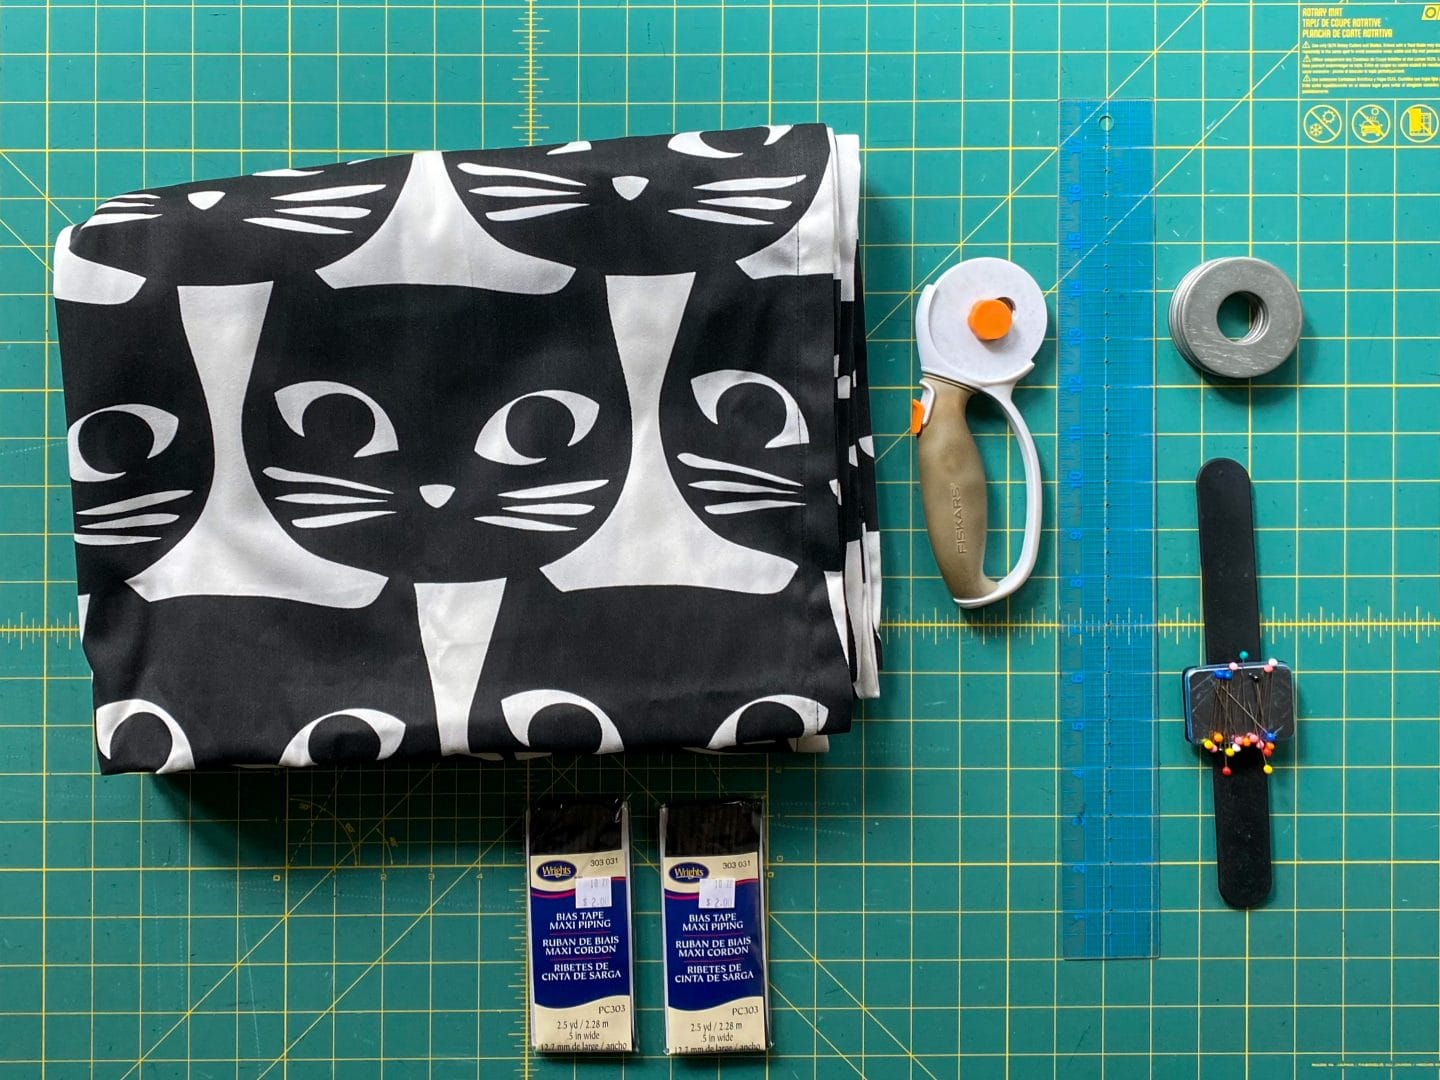 Image of all the supplies to you will need to sew your pillows: White canvas fabric with large black cat faces, rotary cutter, ruler, fabric weights, pins, and piping.